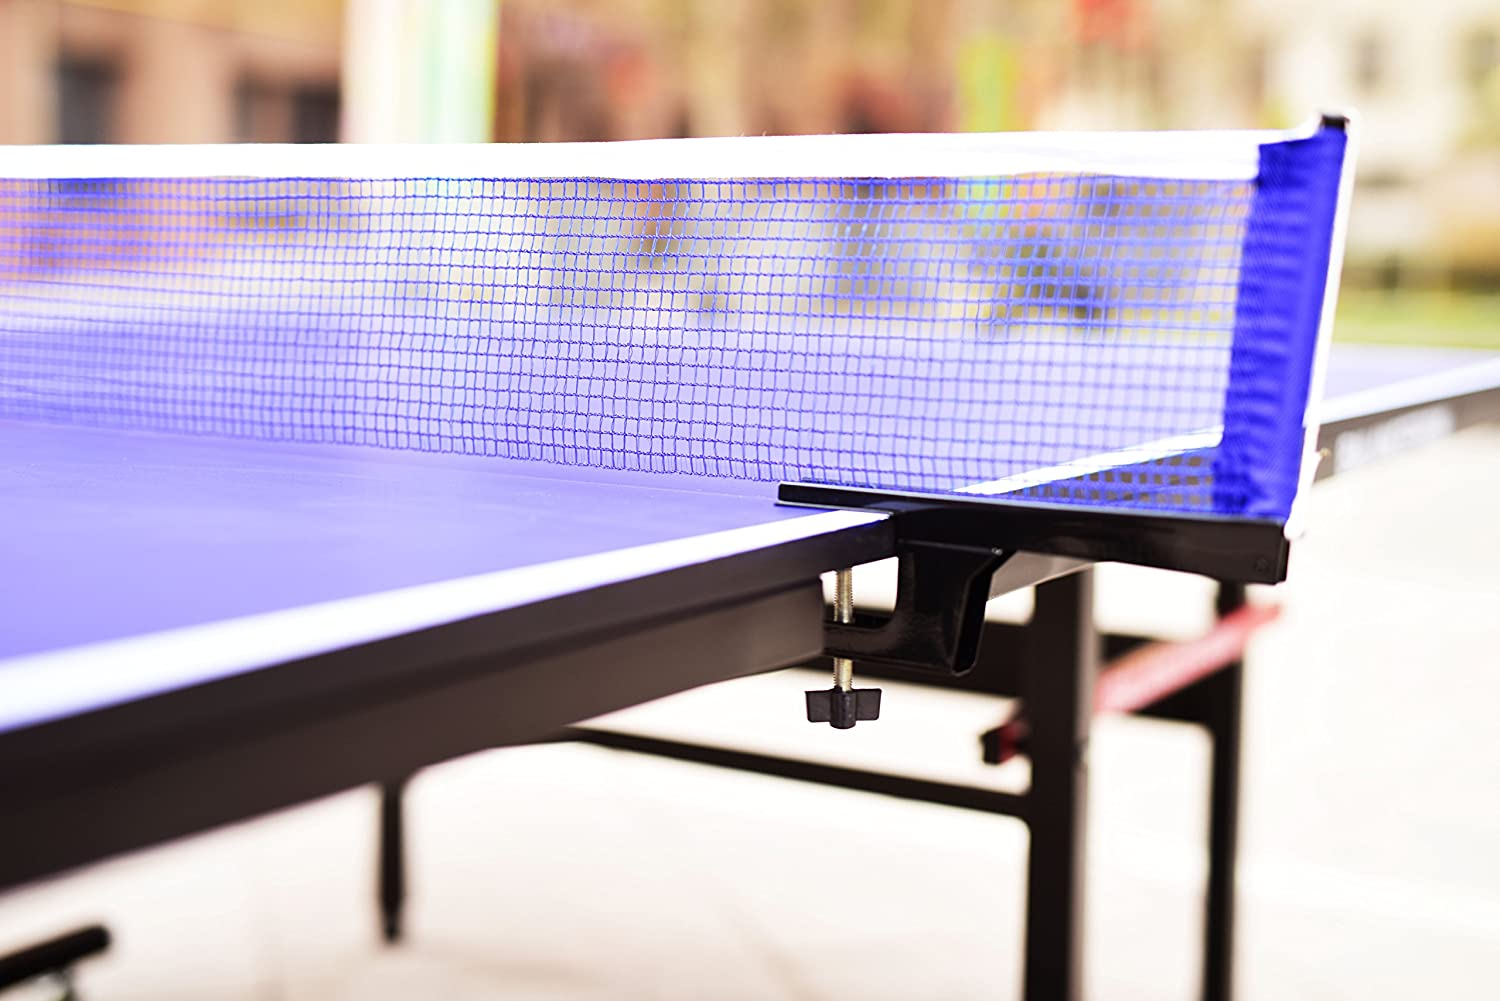 BalanceFrom Gopingpong 18mm Wood Surface Inside Table Tennis Table with Net Set